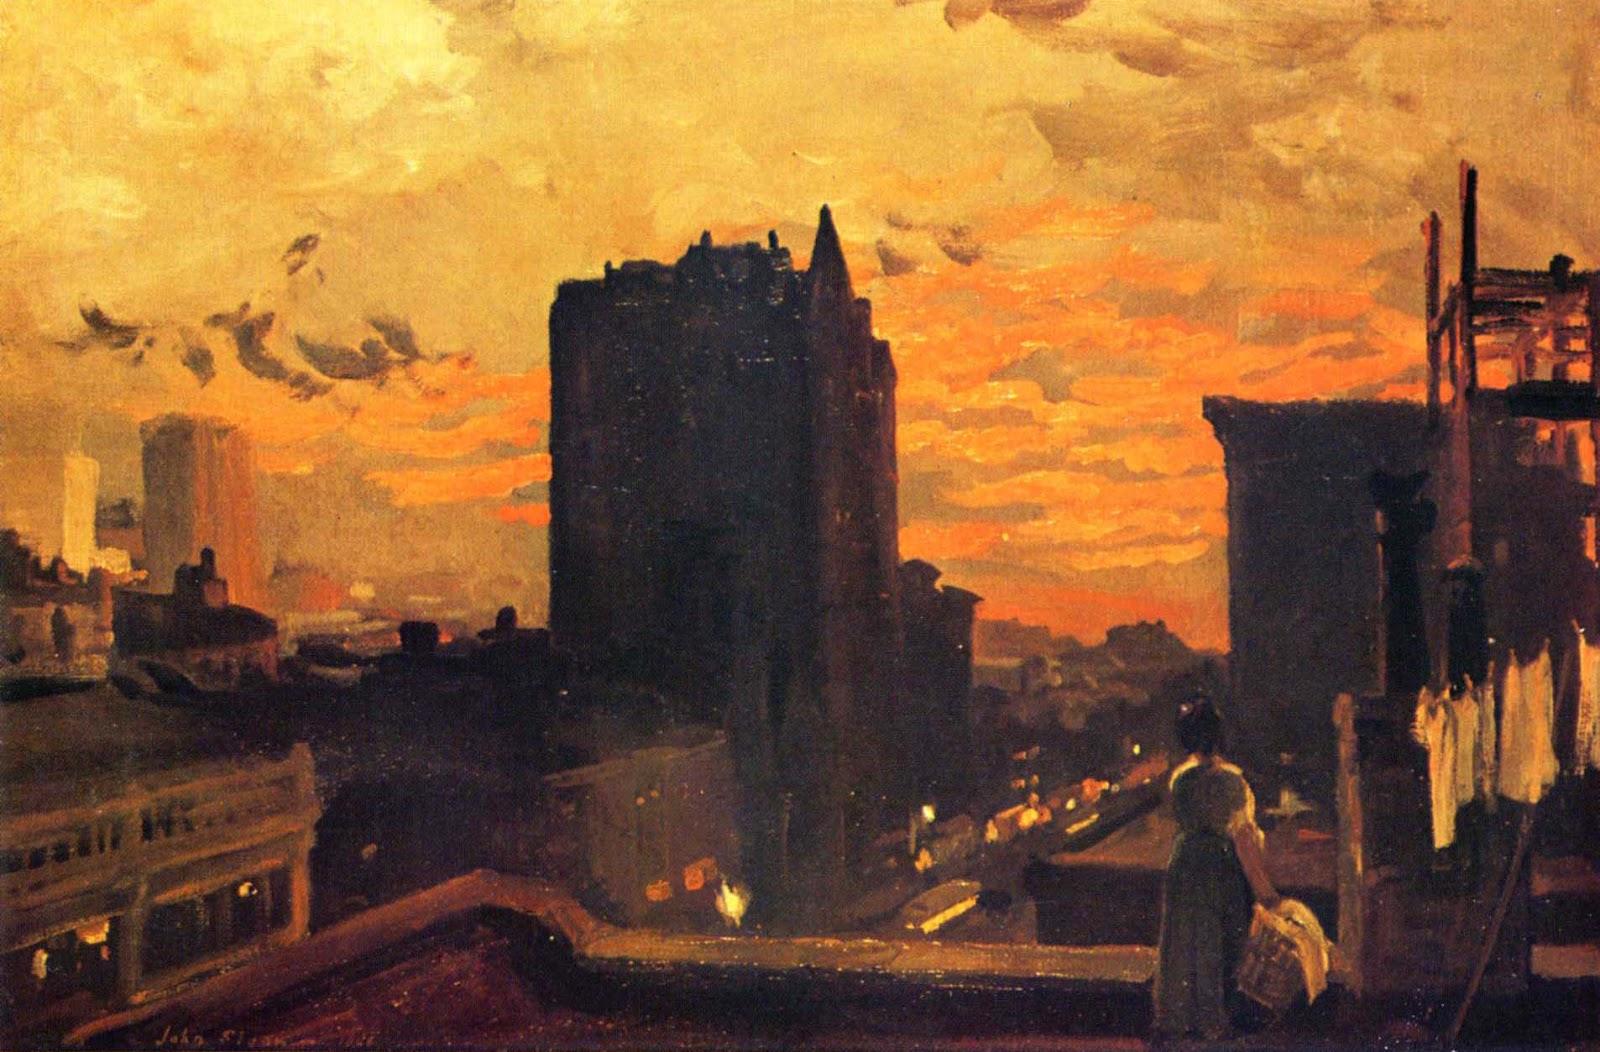 http://2.bp.blogspot.com/-pXb_gPrfSO0/UNLn7VH_CJI/AAAAAAAAWHo/ZdTs1k3BdiA/s1600/1905-06+Sunset,+West+Twenty-Third+Street+oil+on+canvas+61+x+91.4+cm.jpg